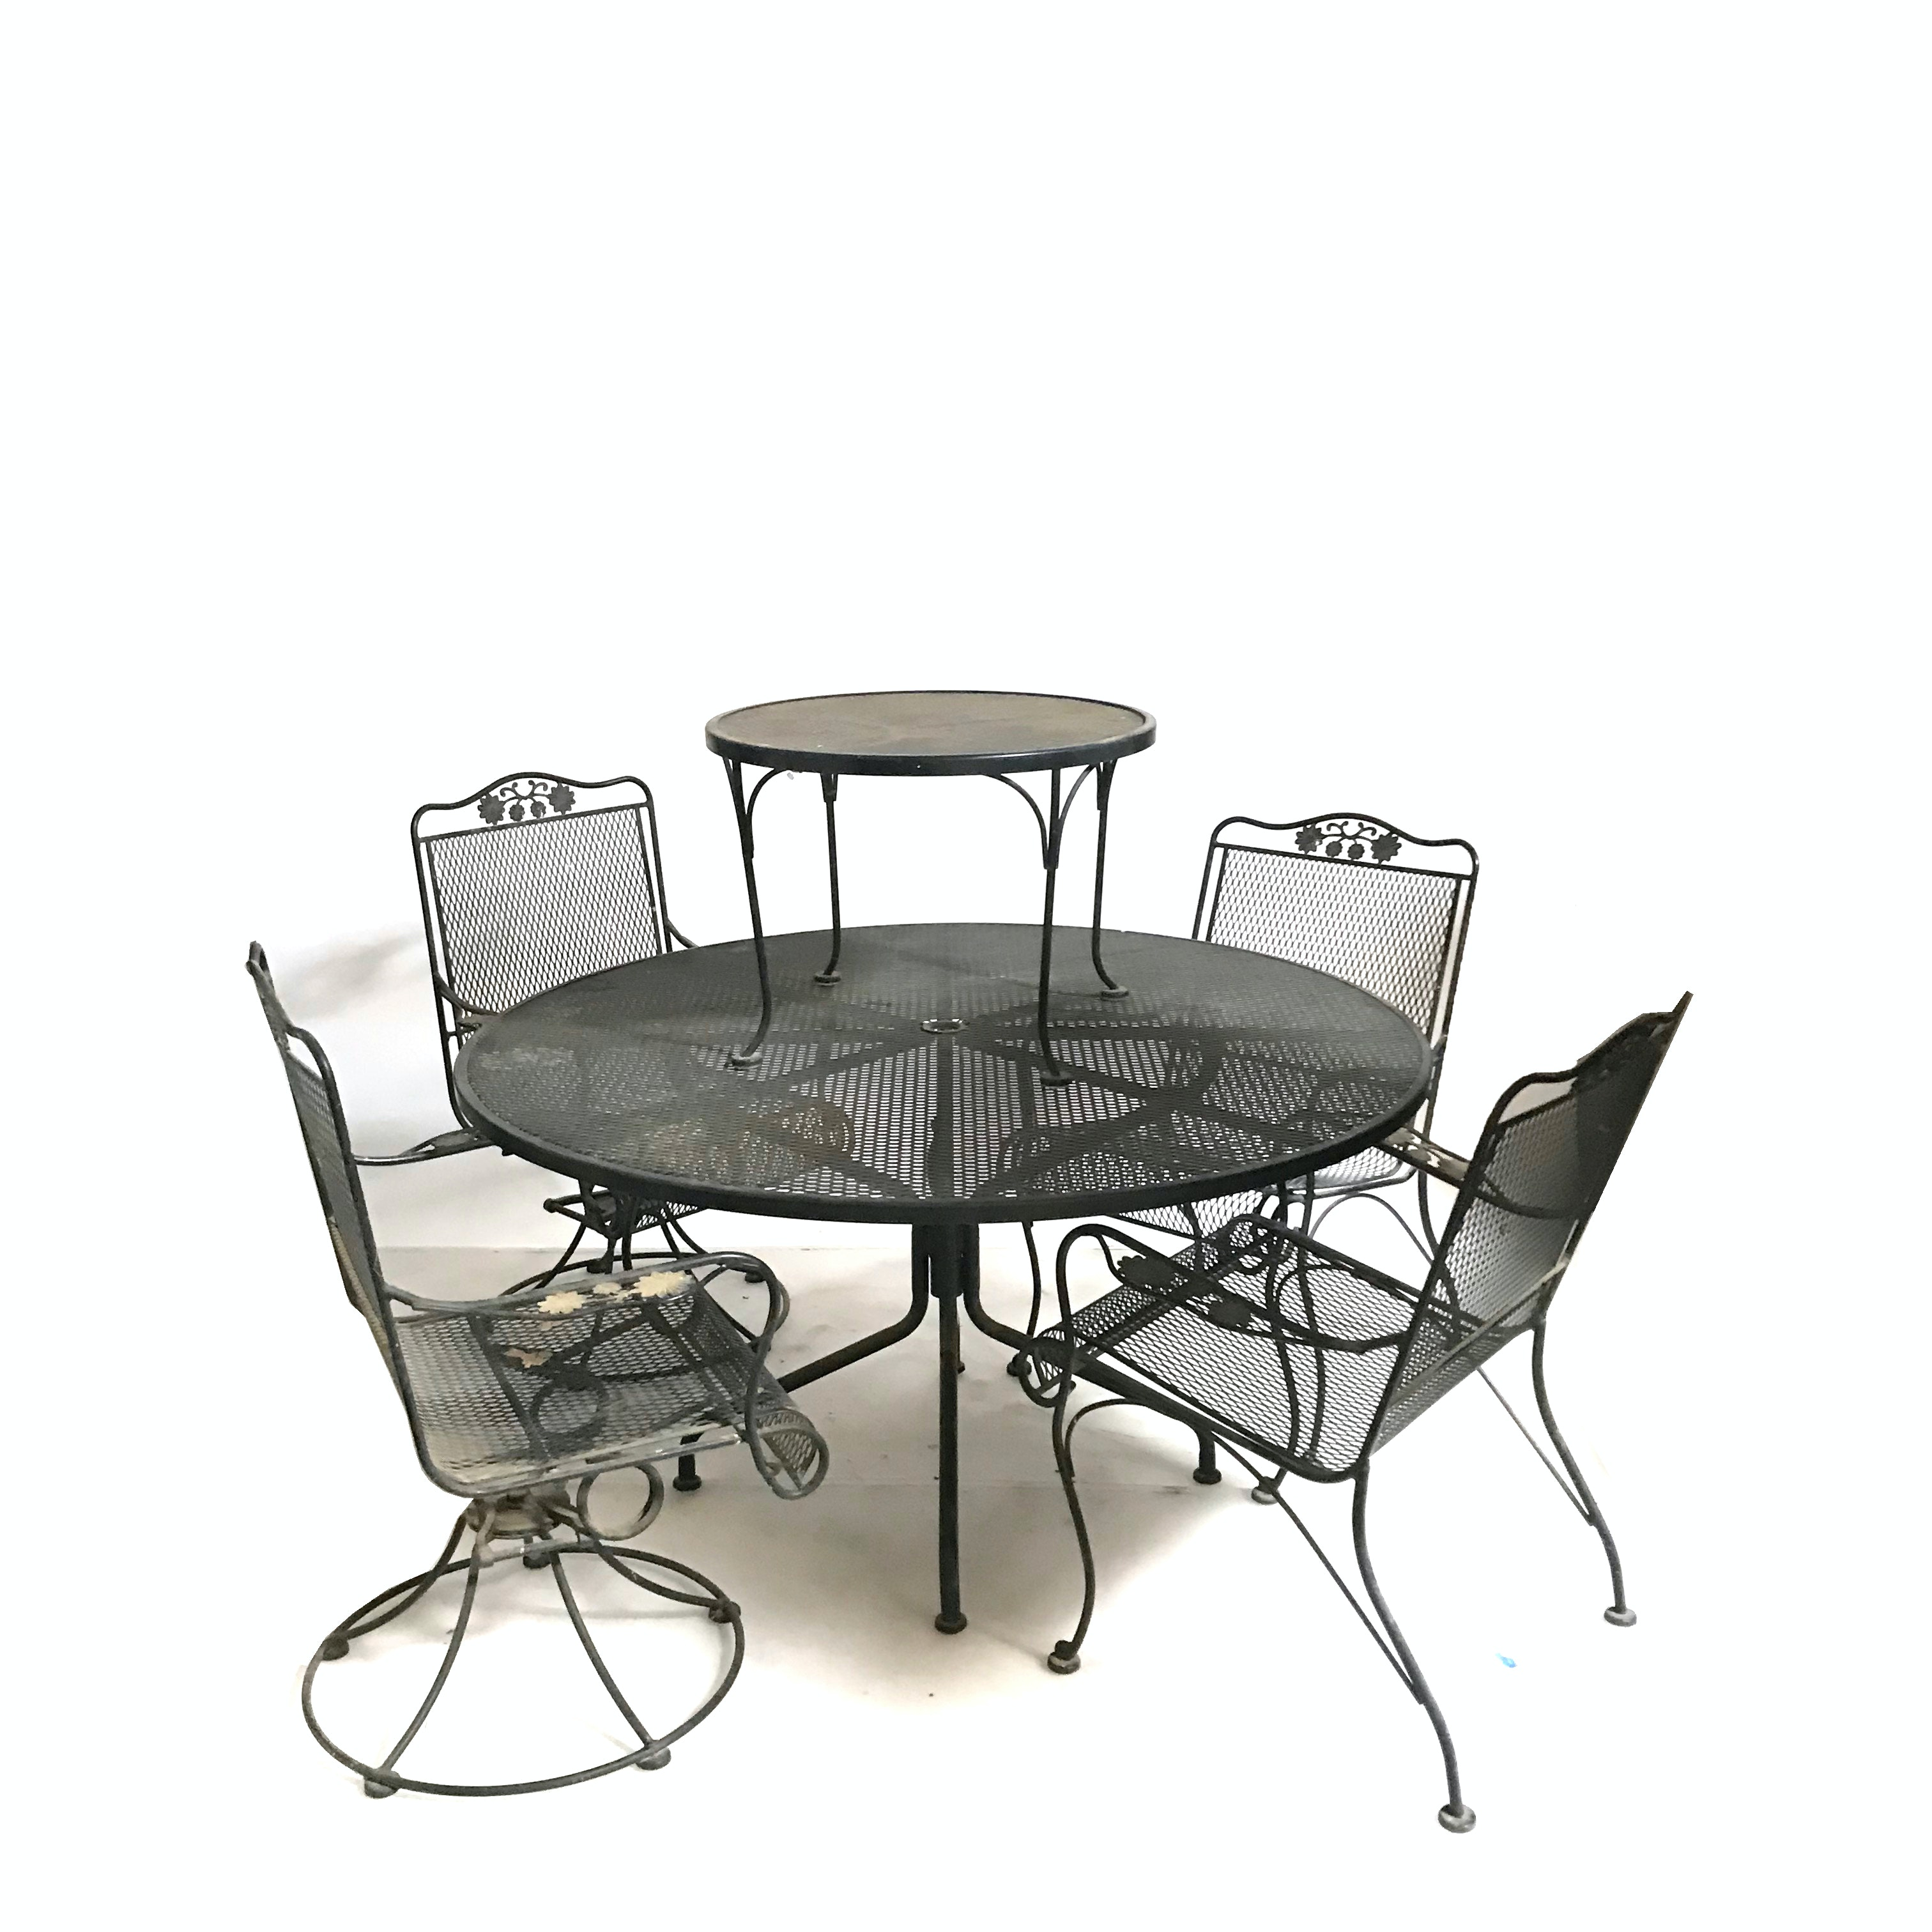 Six-Piece Metal Patio Furniture Set